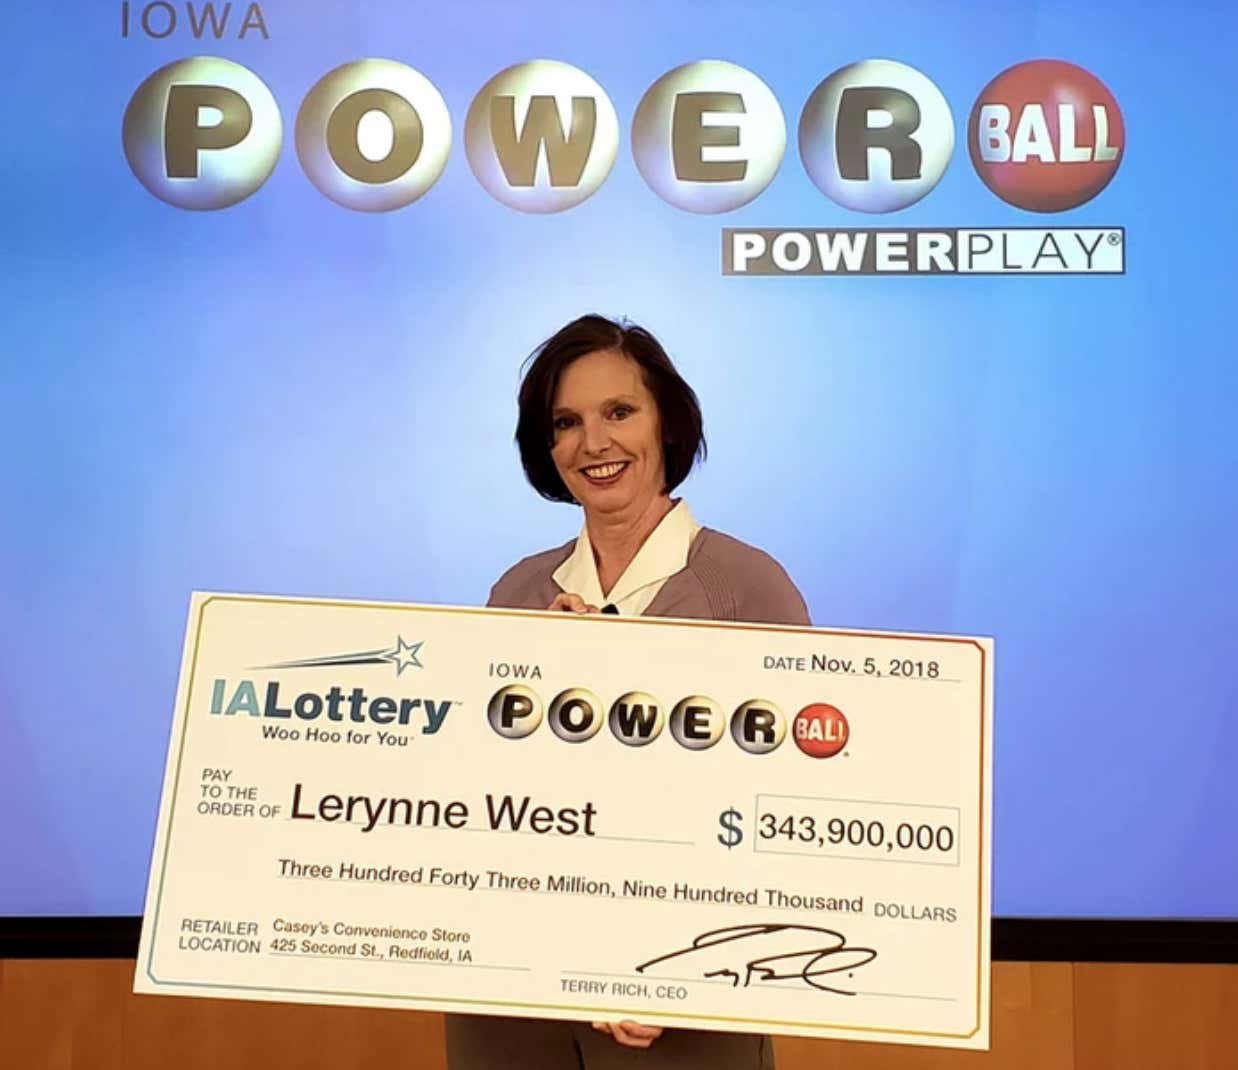 A Grandma In Iowa Won 343 Million Dollars After Ing Ball Ticket With Her Breakfast Pizza